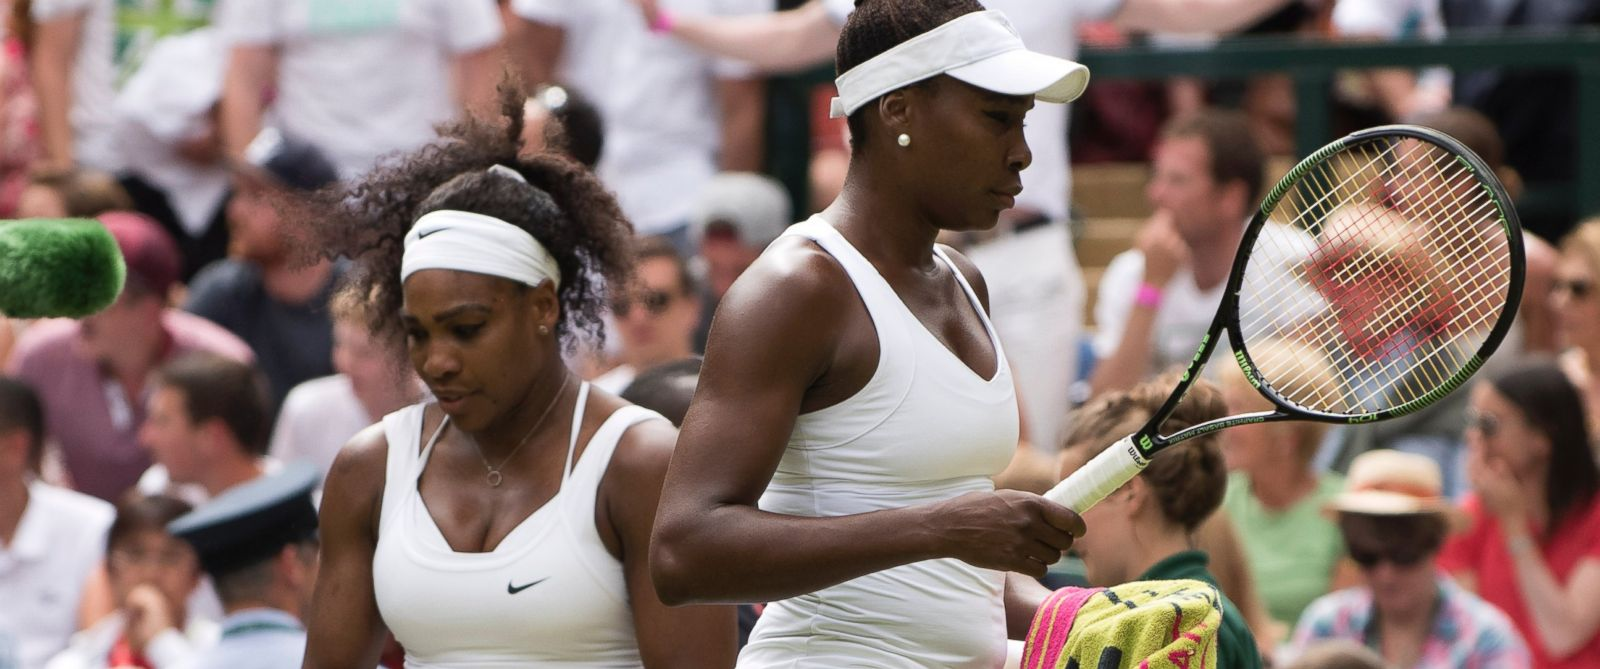 PHOTO: Serena and Venus Williams pass on the changeover during their match at the Wimbledon Championships in London, July 6, 2015.